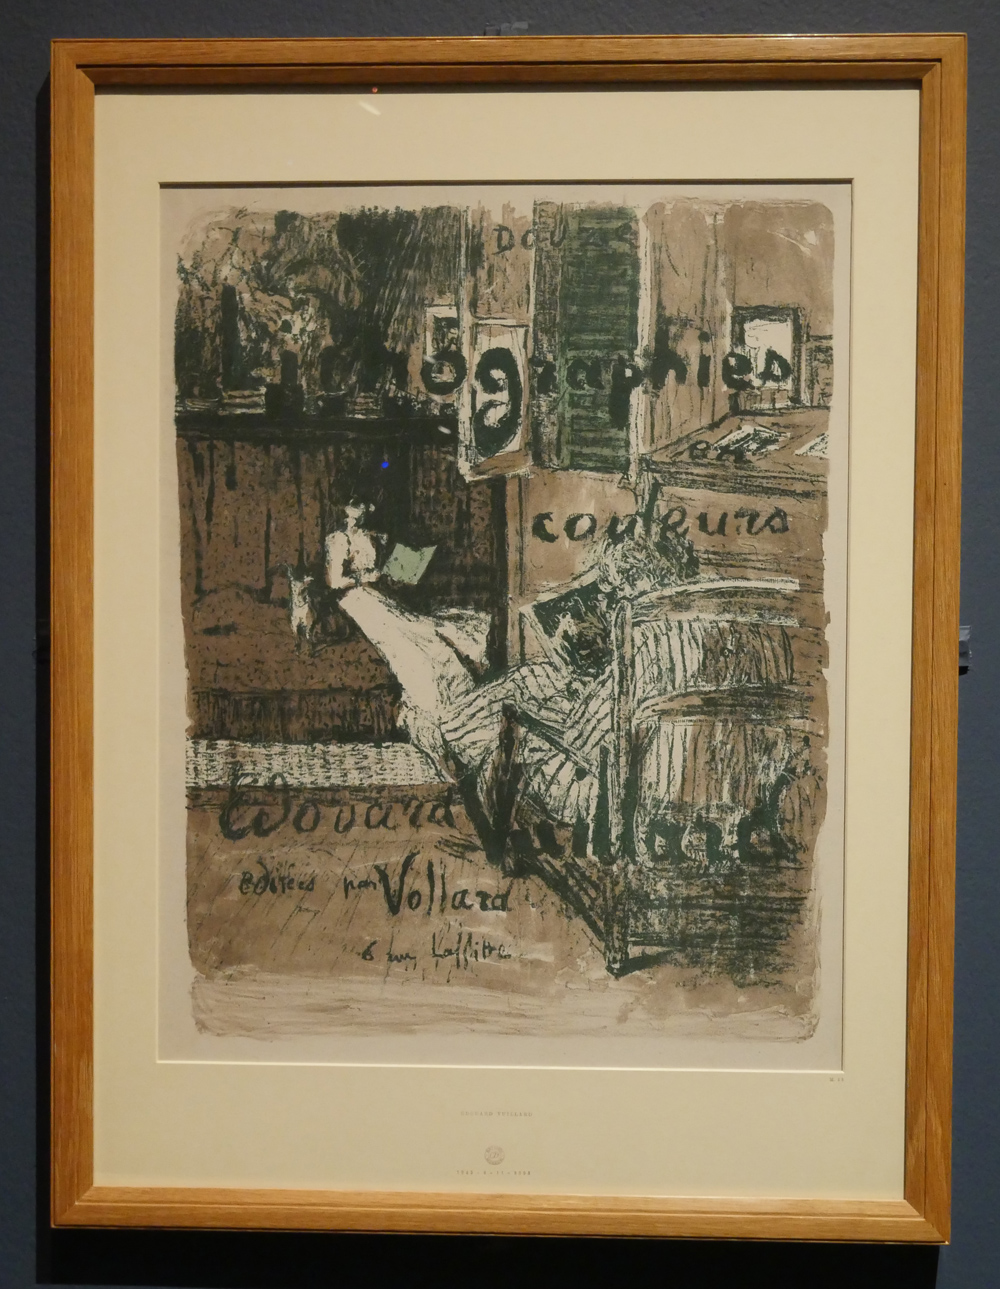 Vuillard Lithograph at the Holbourne Museum